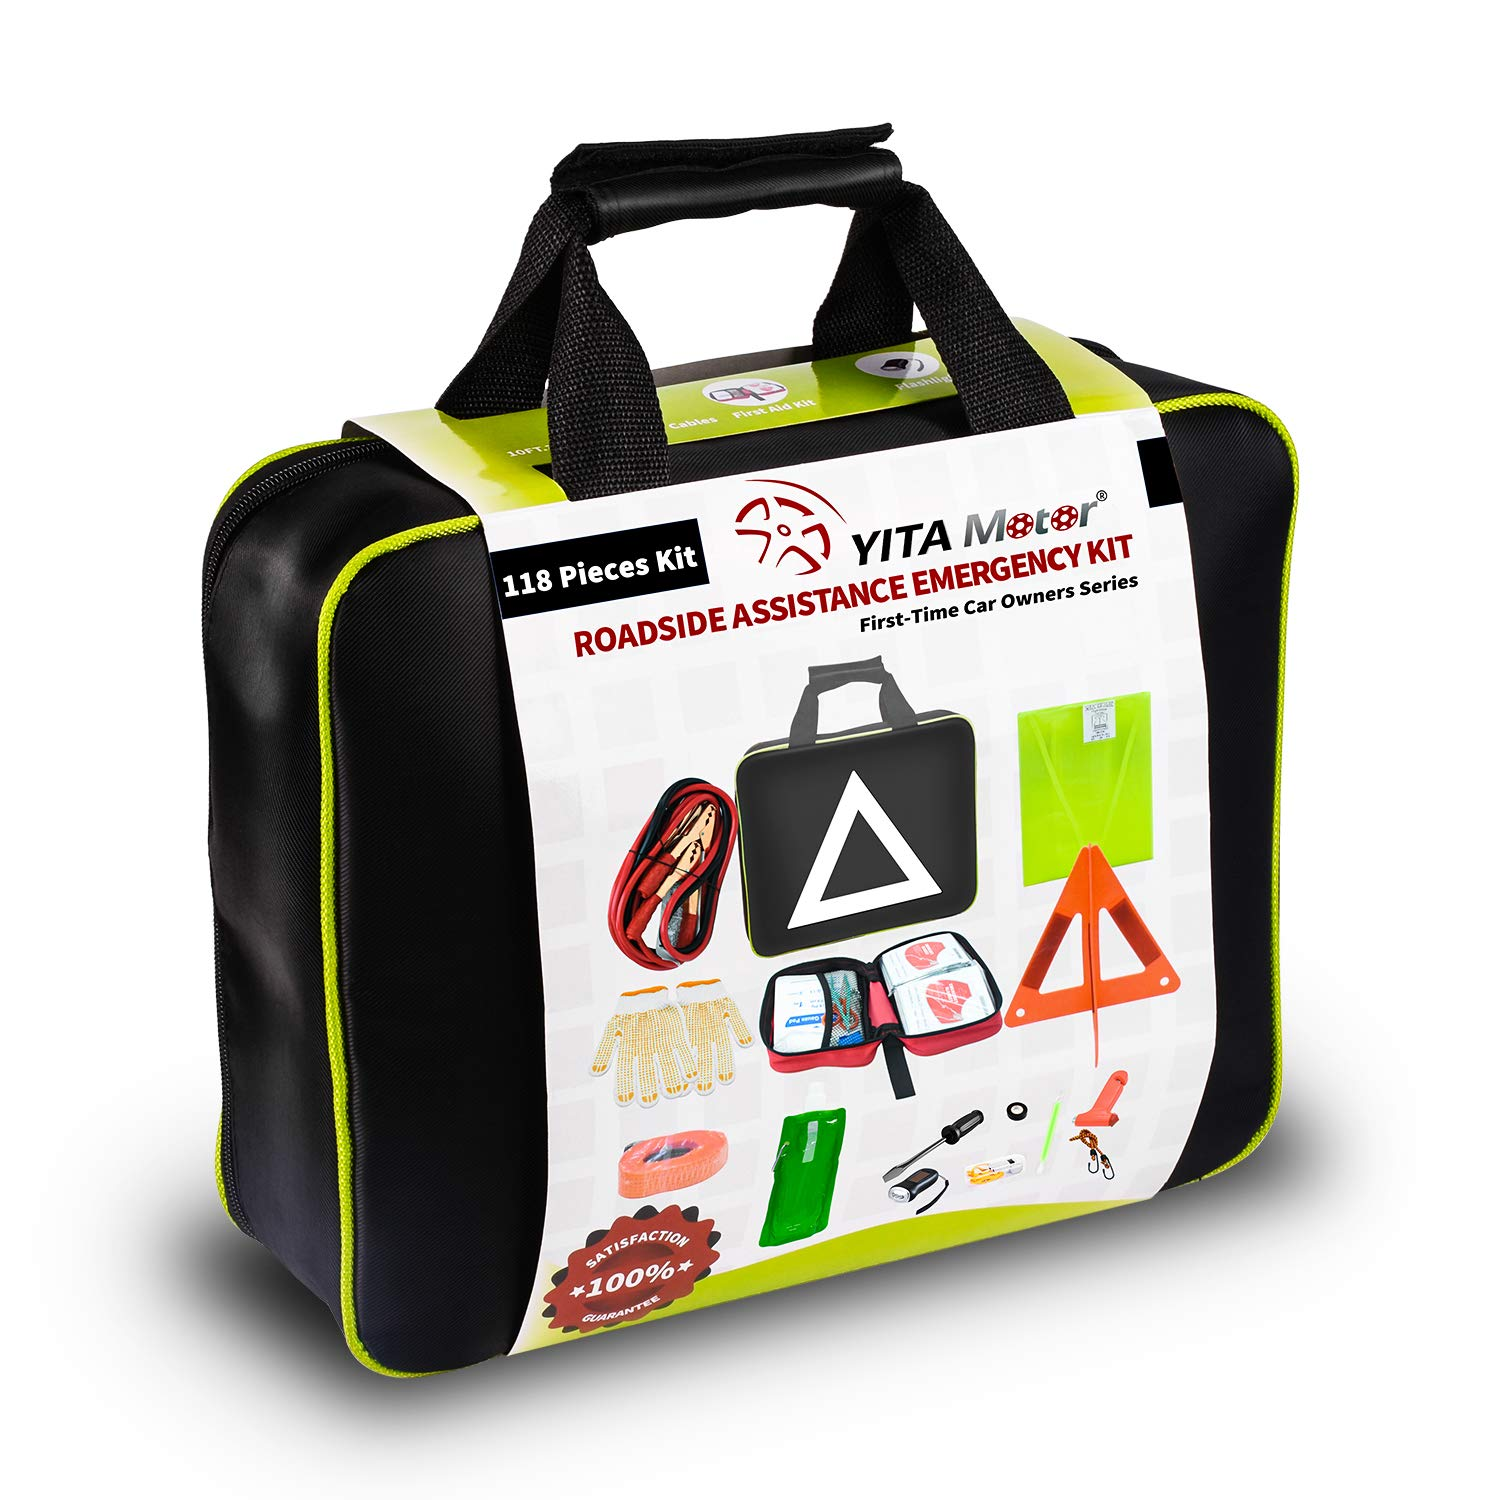 YITAMOTOR Car Emergency Kit Care First Aid Roadside Safety Toolkit with  Jumper Cables, Tow Strap, LED Flash Light, Cleansing Wipes, Vest, Bandages  and ...